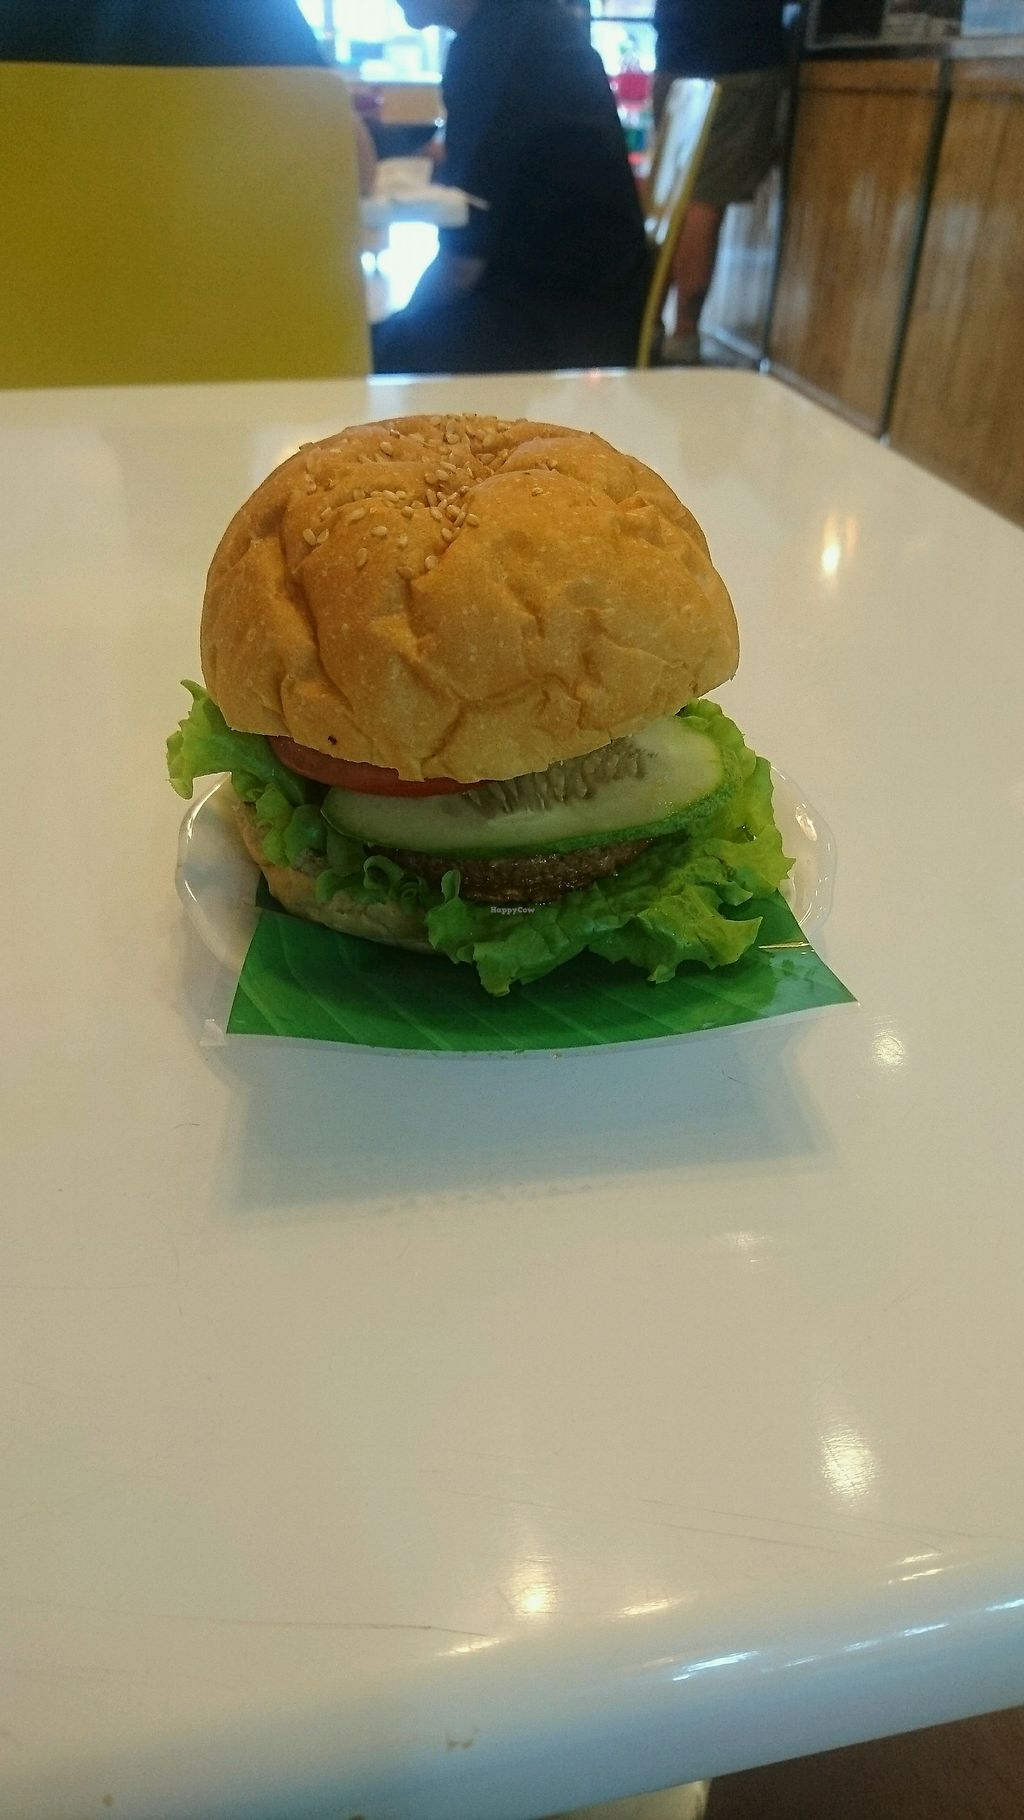 """Photo of Healthy Farm - Tran Hung Dao District 1  by <a href=""""/members/profile/jesse558"""">jesse558</a> <br/>vegan burger <br/> November 6, 2017  - <a href='/contact/abuse/image/71752/322587'>Report</a>"""